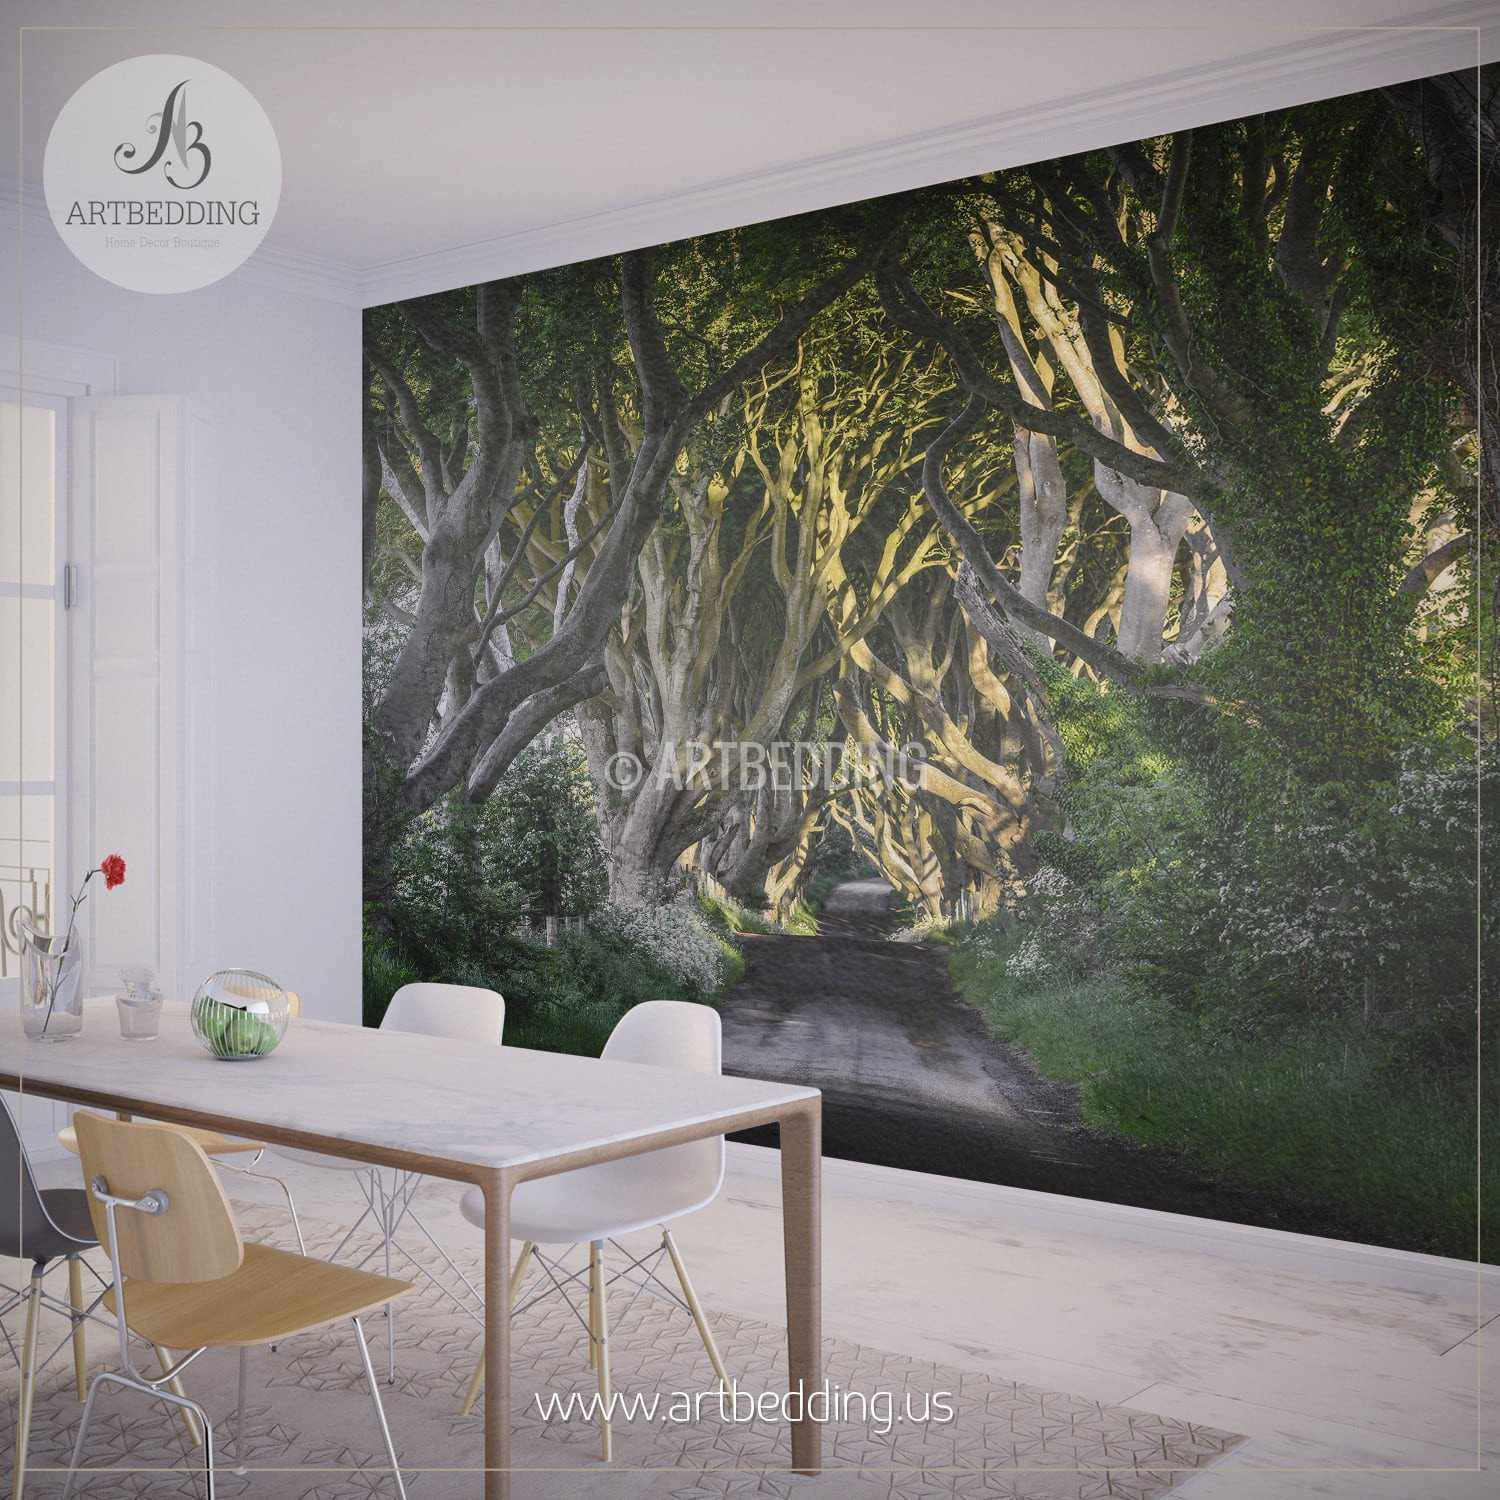 route through forest self adhesive photo mural artbedding route through forest wall mural self adhesive peel stick photo mural nature photo